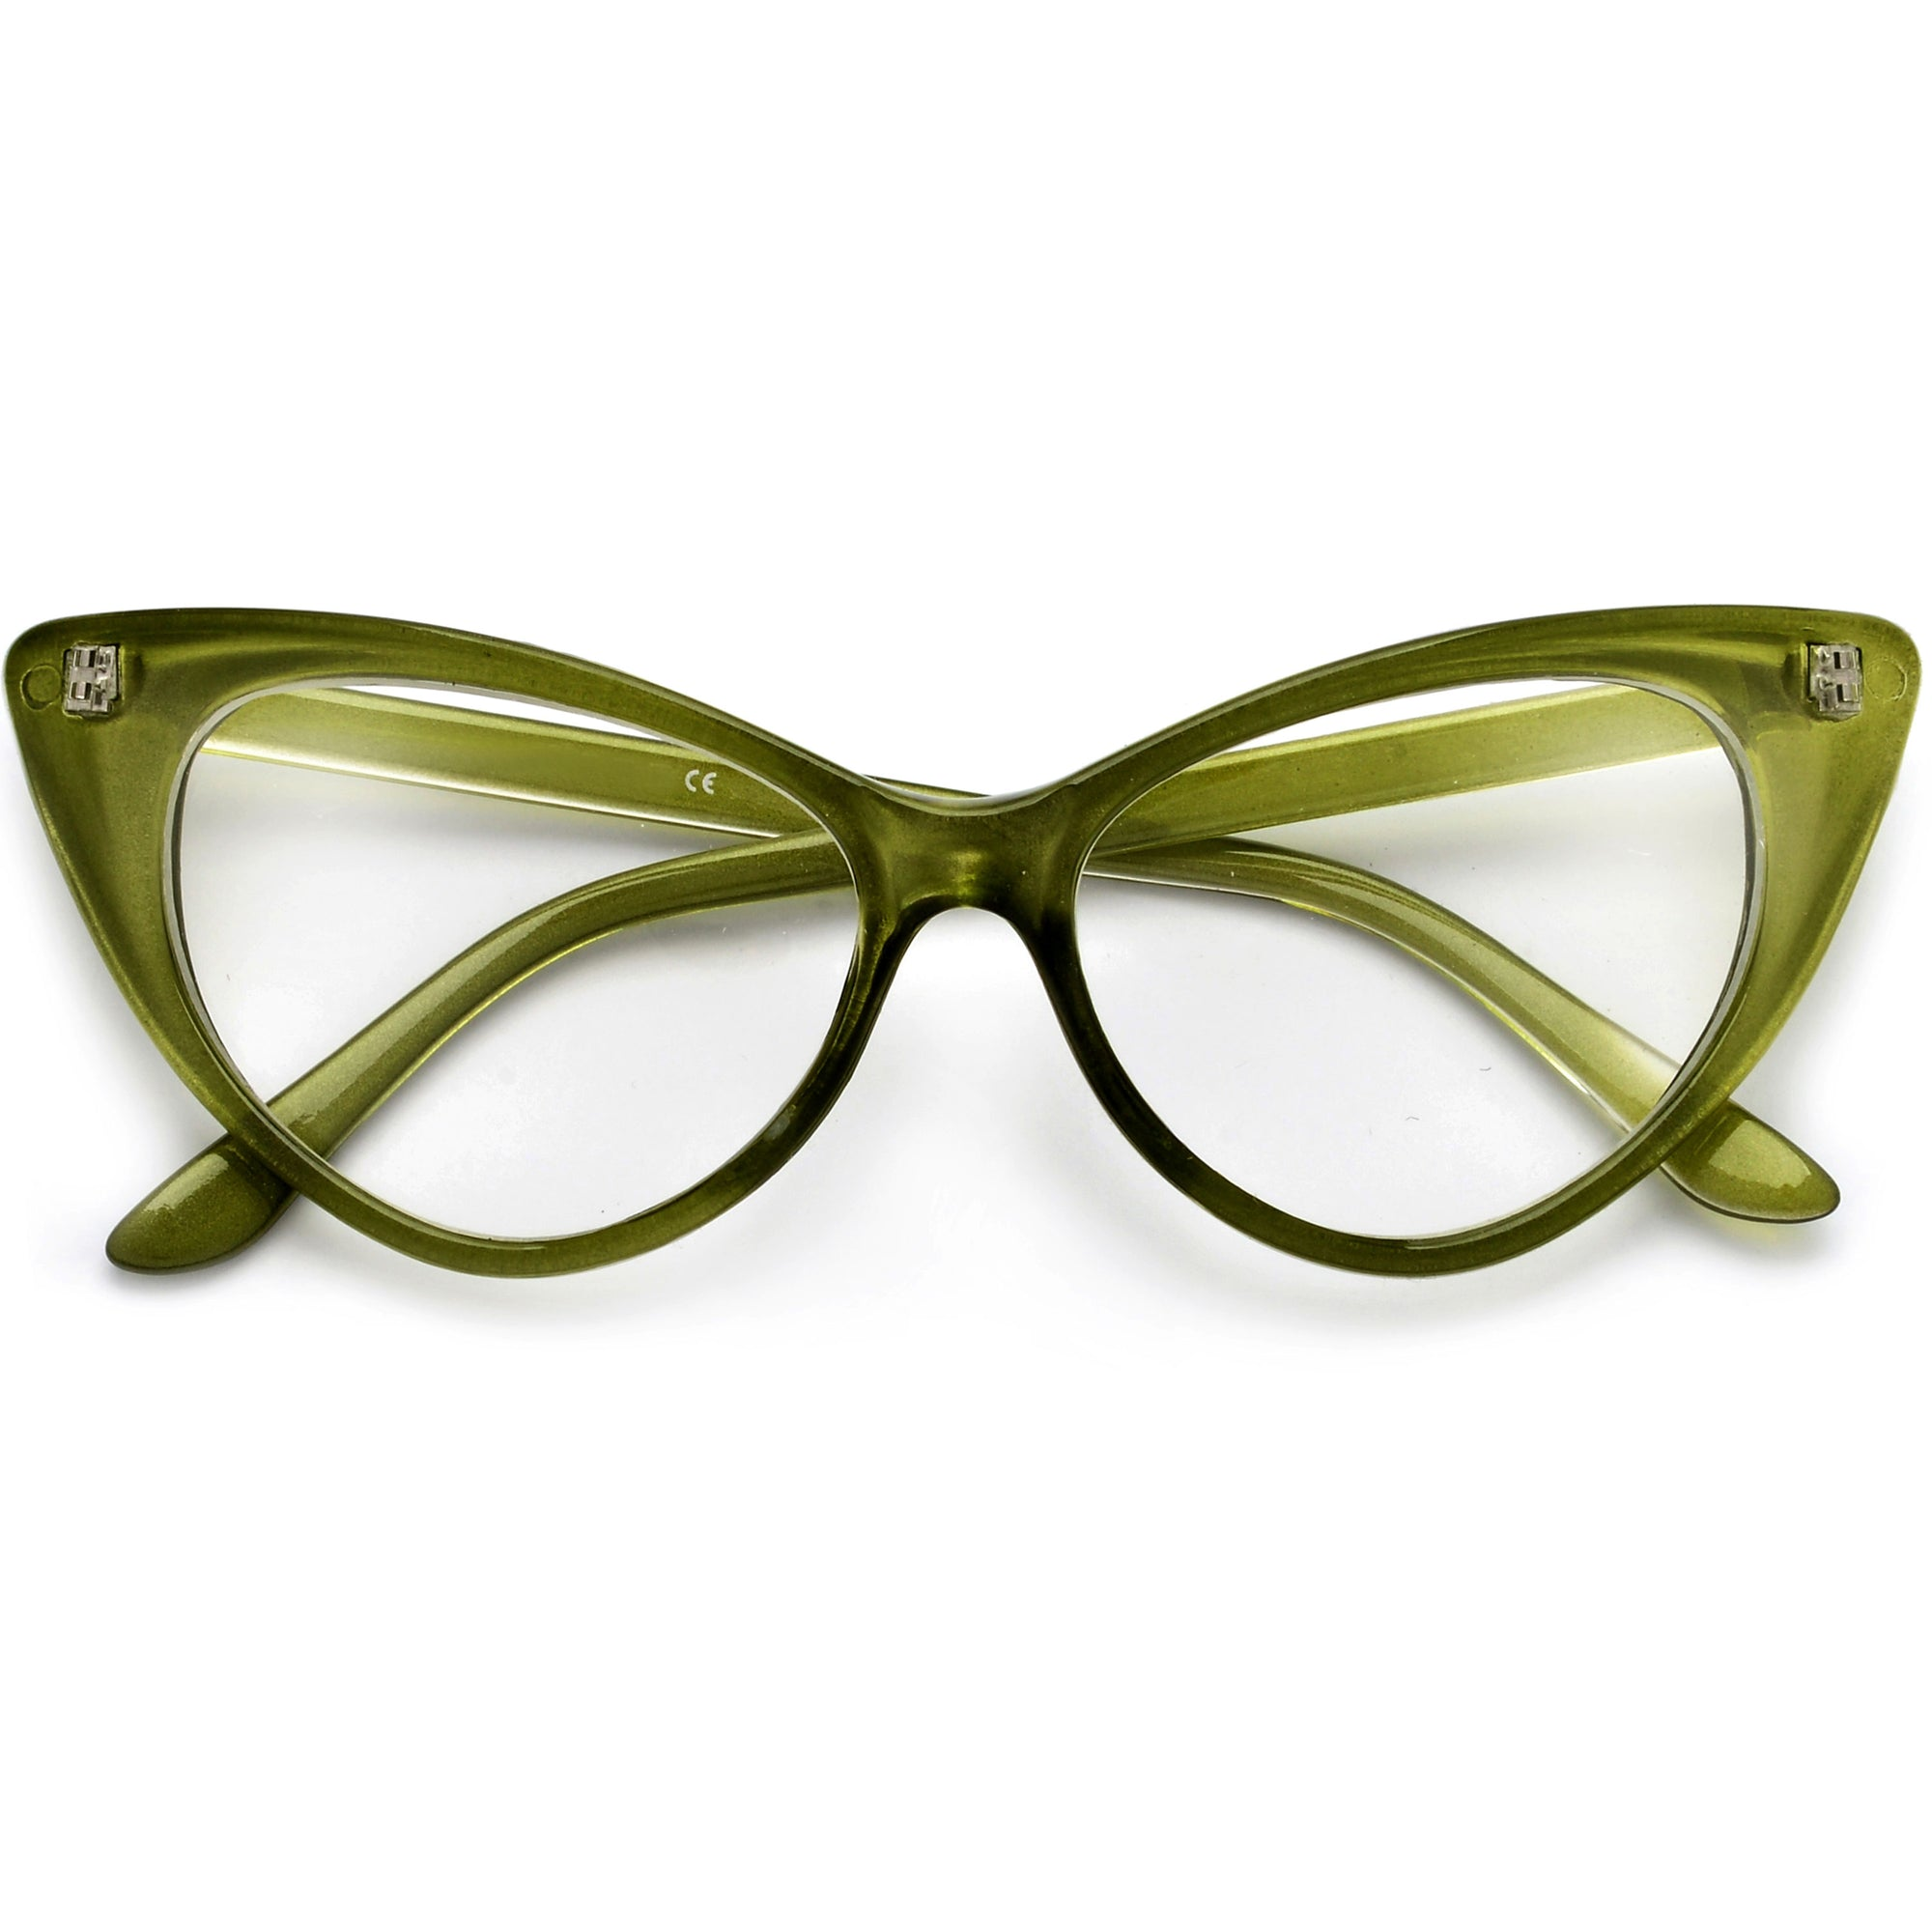 9273d0be4a Super Cat Eye Vintage Inspired Fashion Mod Chic High Pointed Clear Eye Wear  Glasses